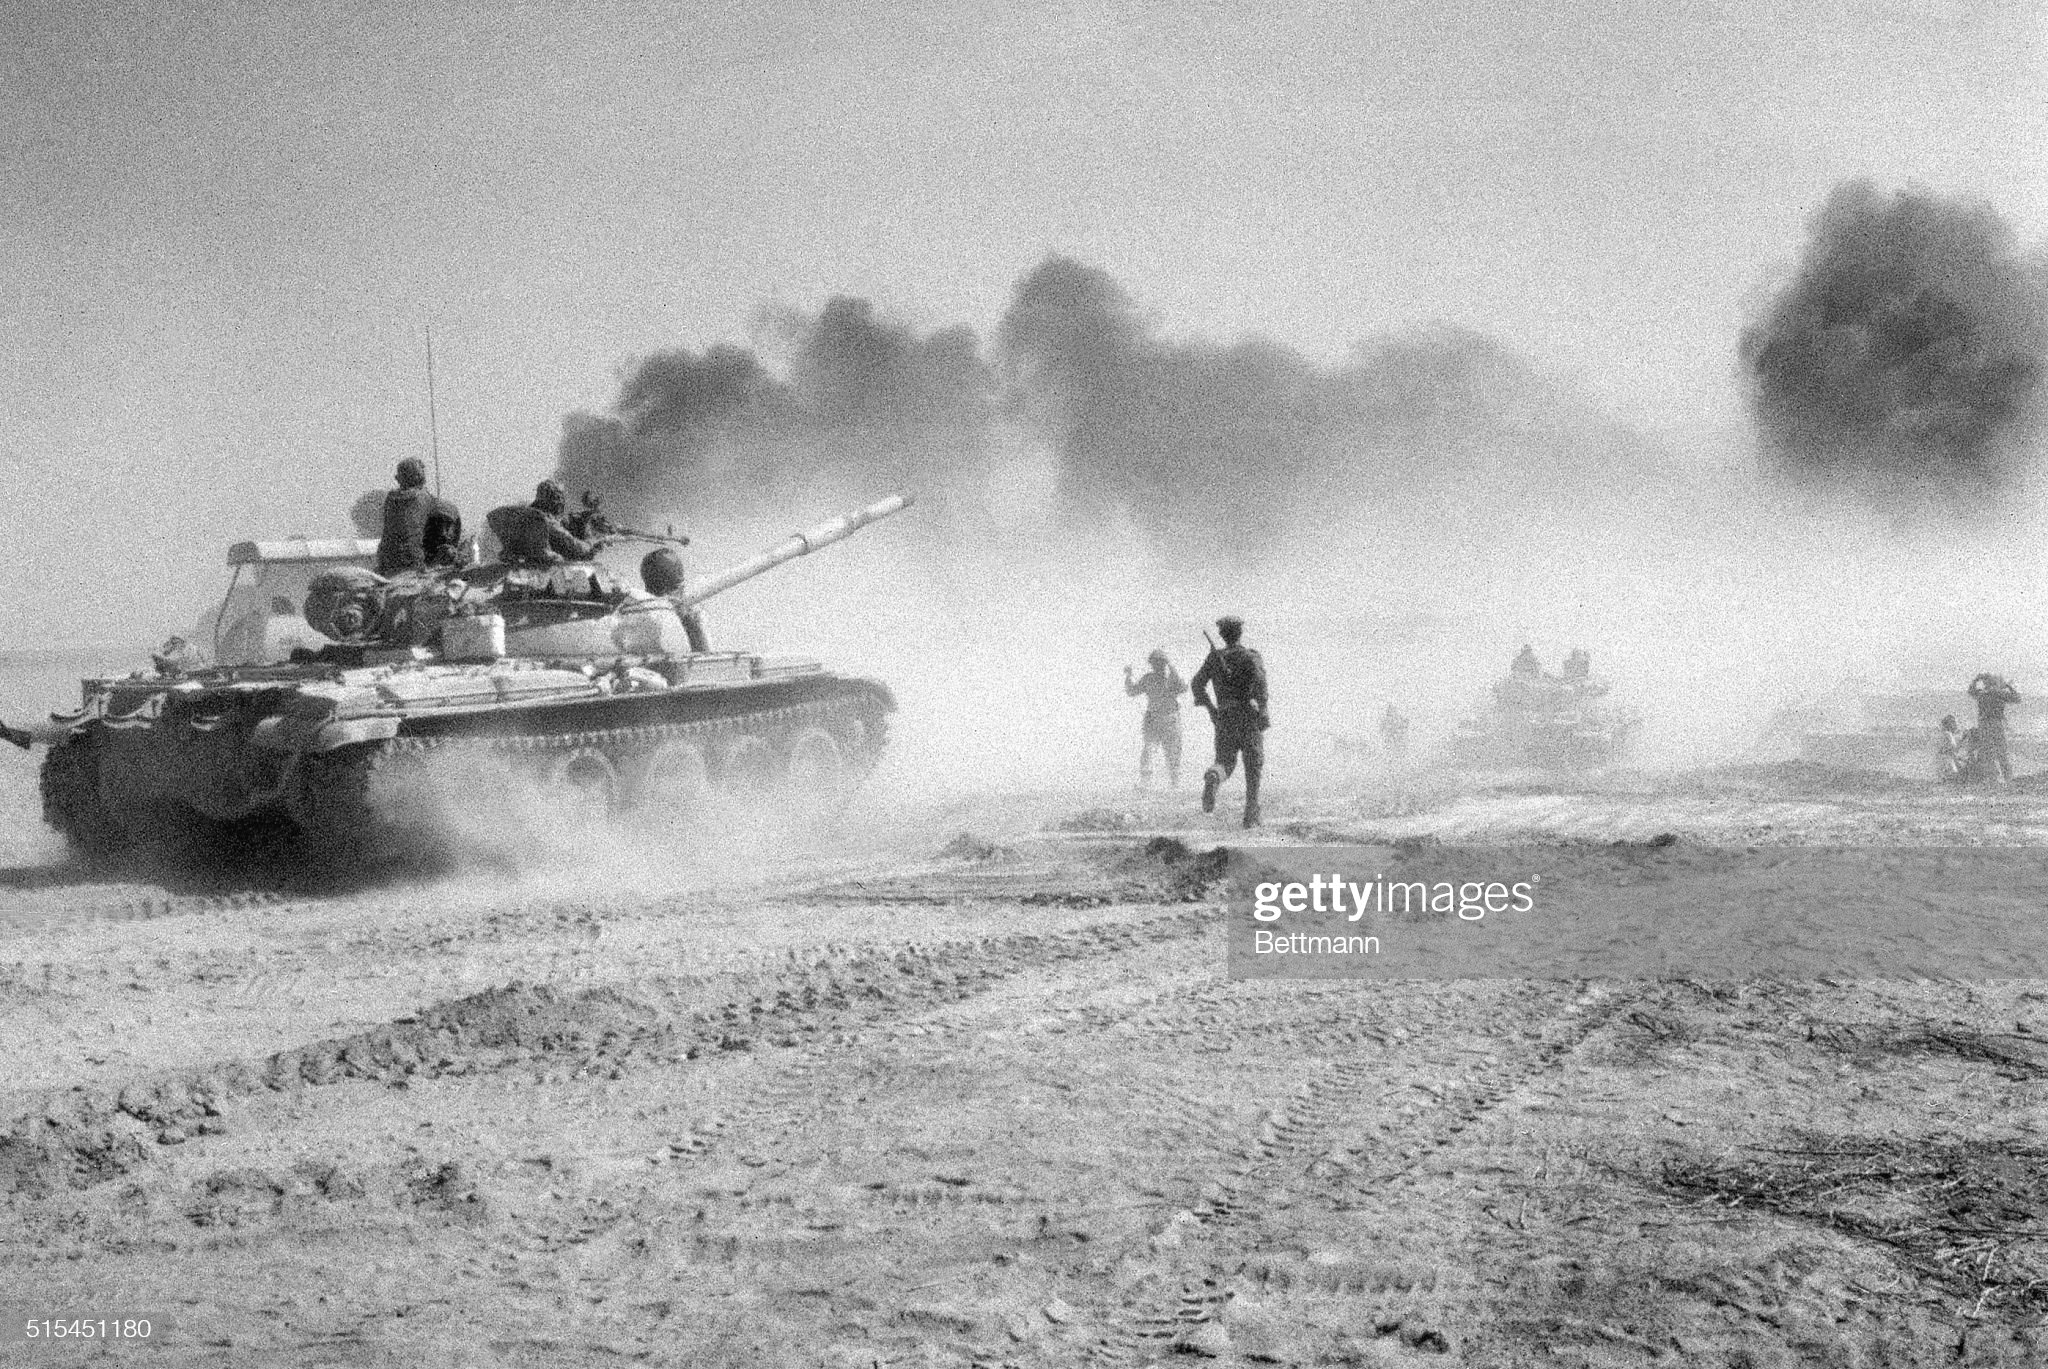 https://media.gettyimages.com/photos/10221980basra-iraq-iraqi-troops-riding-in-sovietmade-tanks-head-for-a-picture-id515451180?s=2048x2048